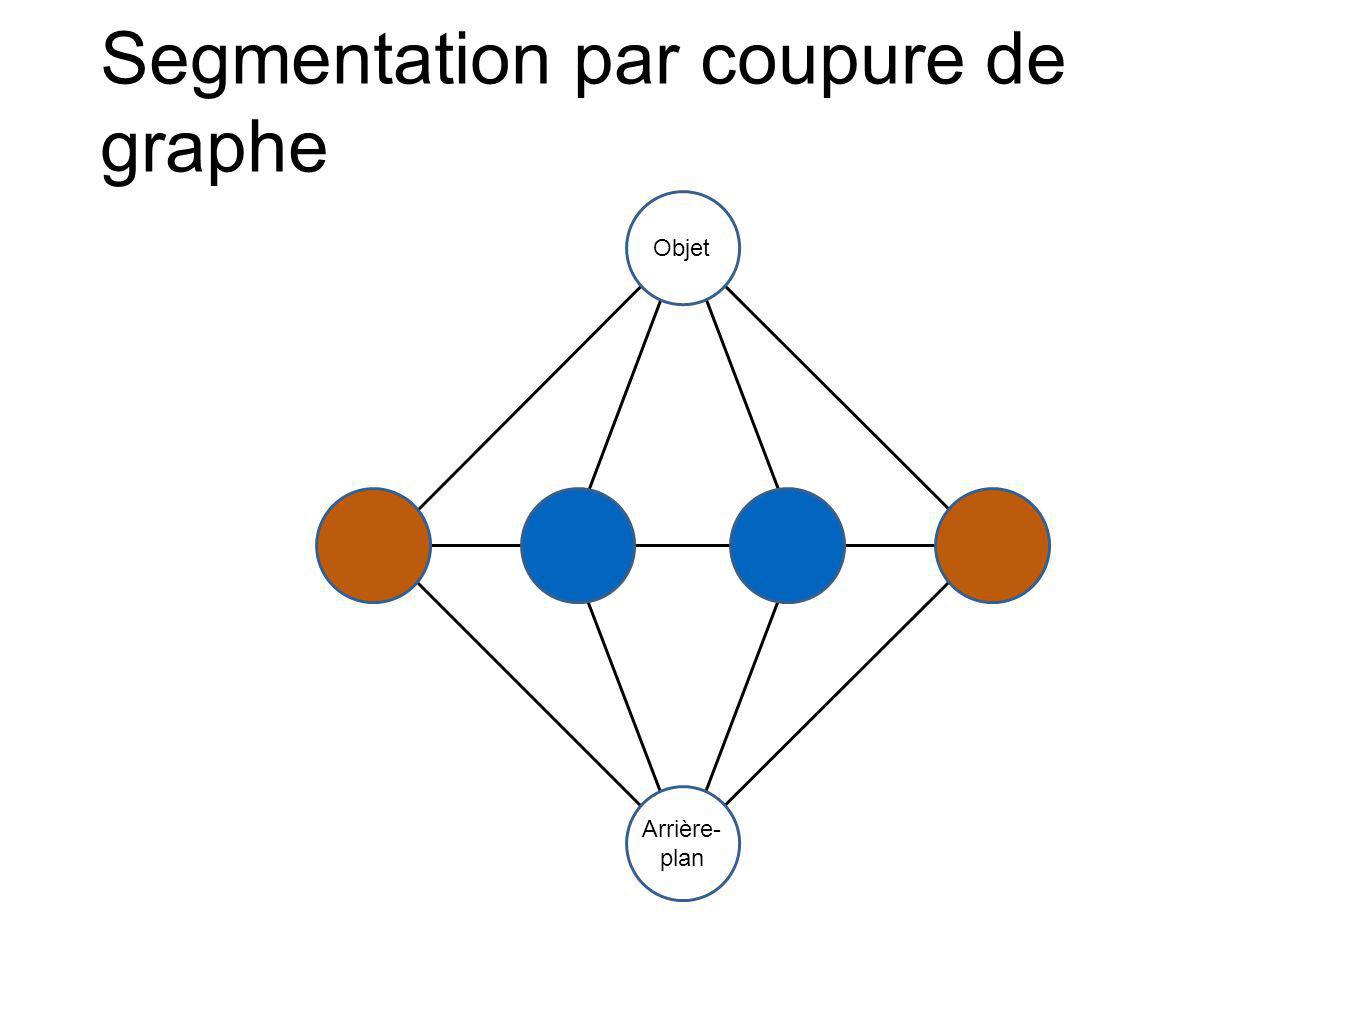 Segmentation par coupure de graphe